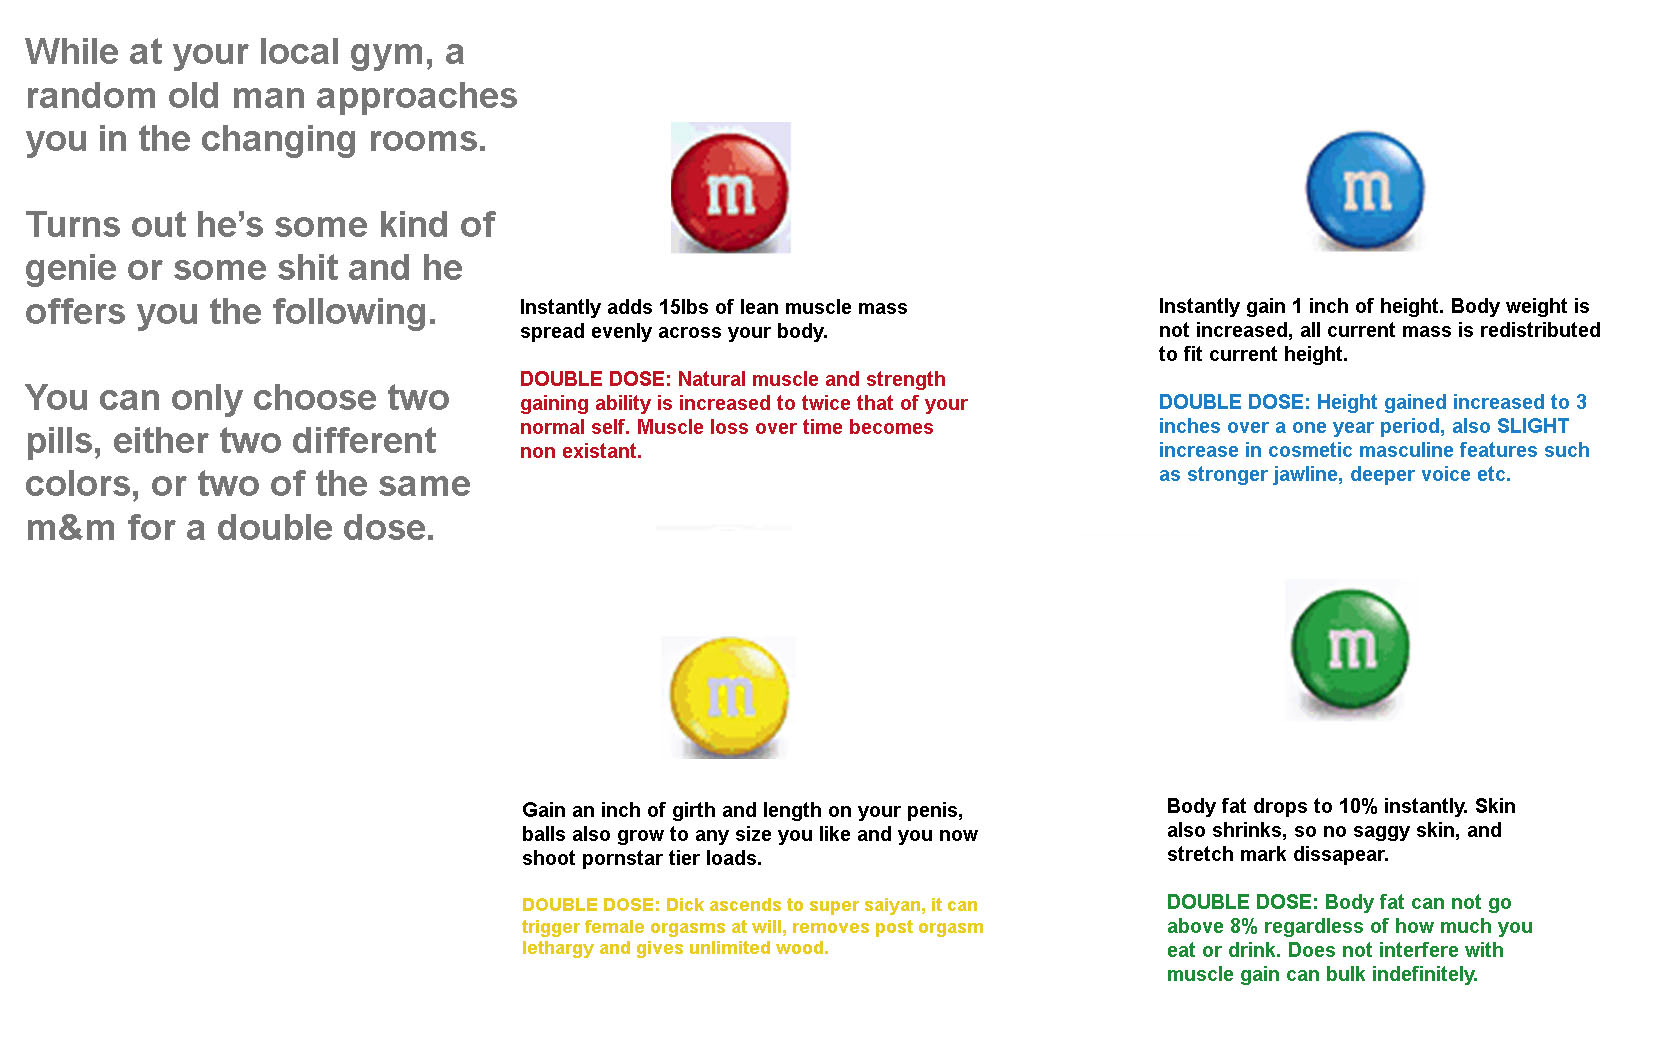 Choose. Choose which of these M&Ms you'd eat and which abilities you'd gain.. While at your local gym, a random old man approaches you in the changing rooms